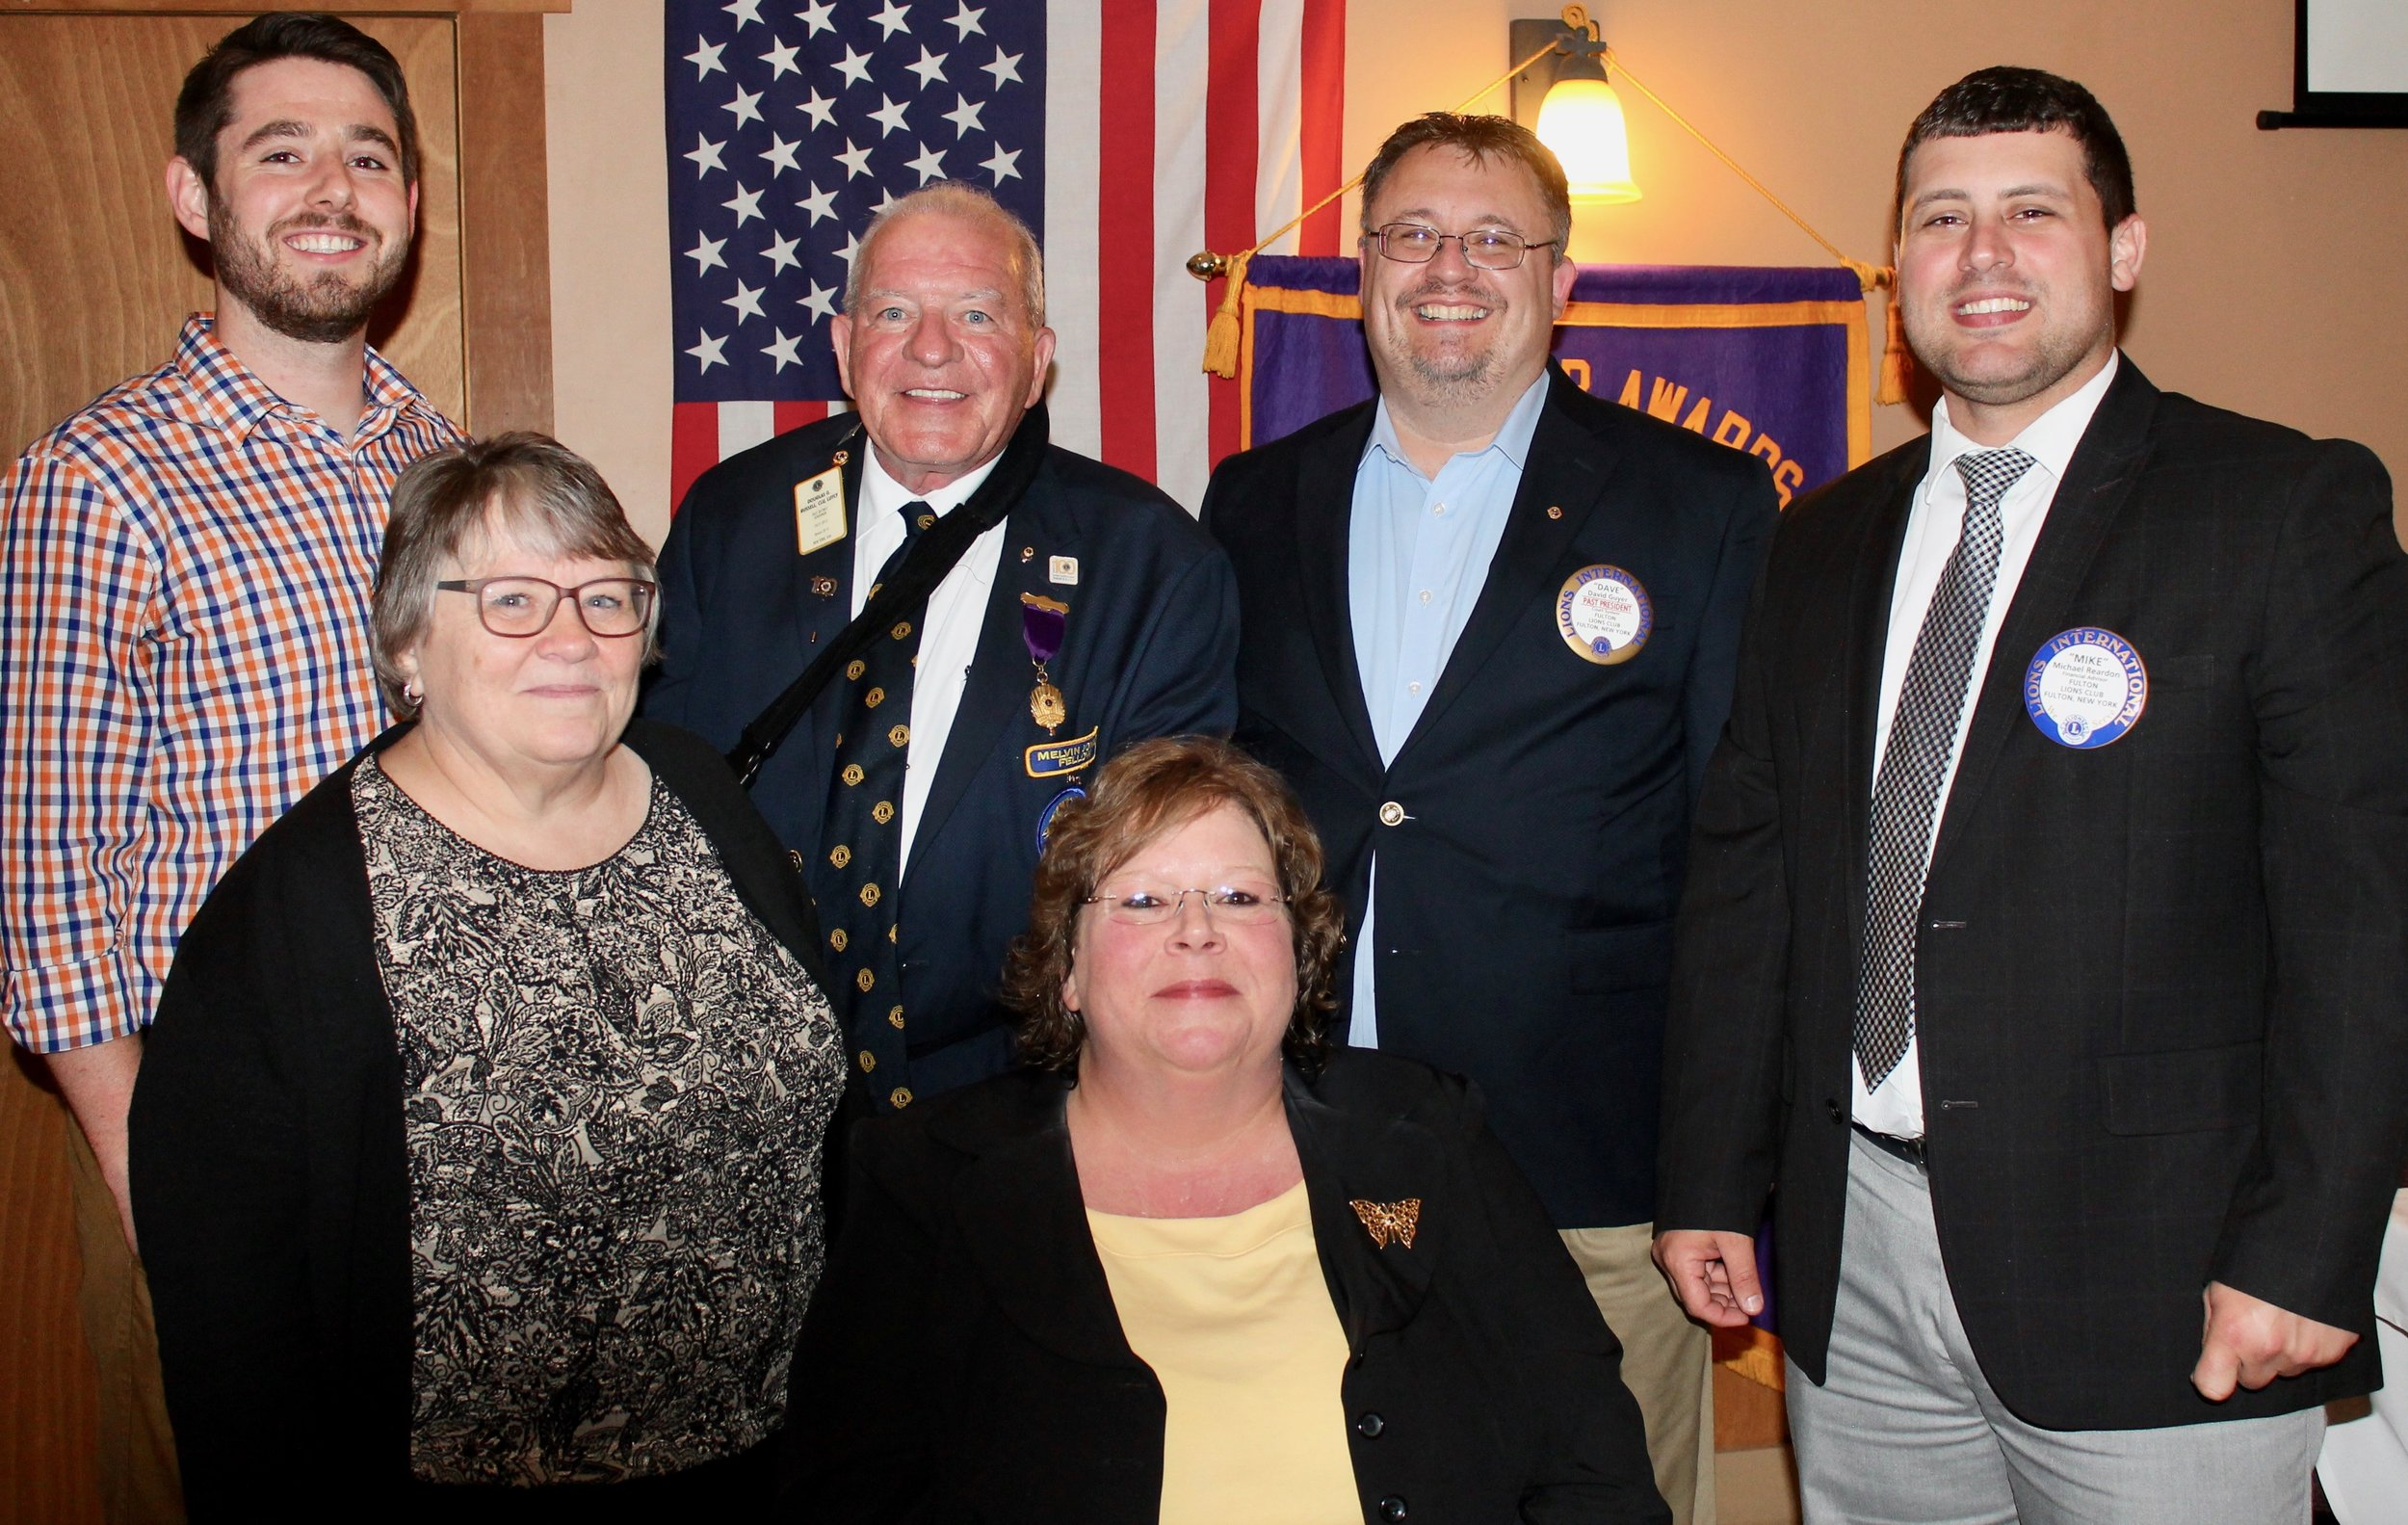 The Fulton Lions Club installed its new slate of officers for 2017-18 and presented club awards for the 2016-17-club year at their June 15 meeting. Michelle Stanard, seated, is president and from left, standing: Zachary Merry, vice president; Linda Hughes, secretary; Lion Douglas G. Russell of Liverpool, past district governor, zone 20-Y1, who presided over the installation; David Guyer, immediate past president; and Michael Reardon, treasurer.